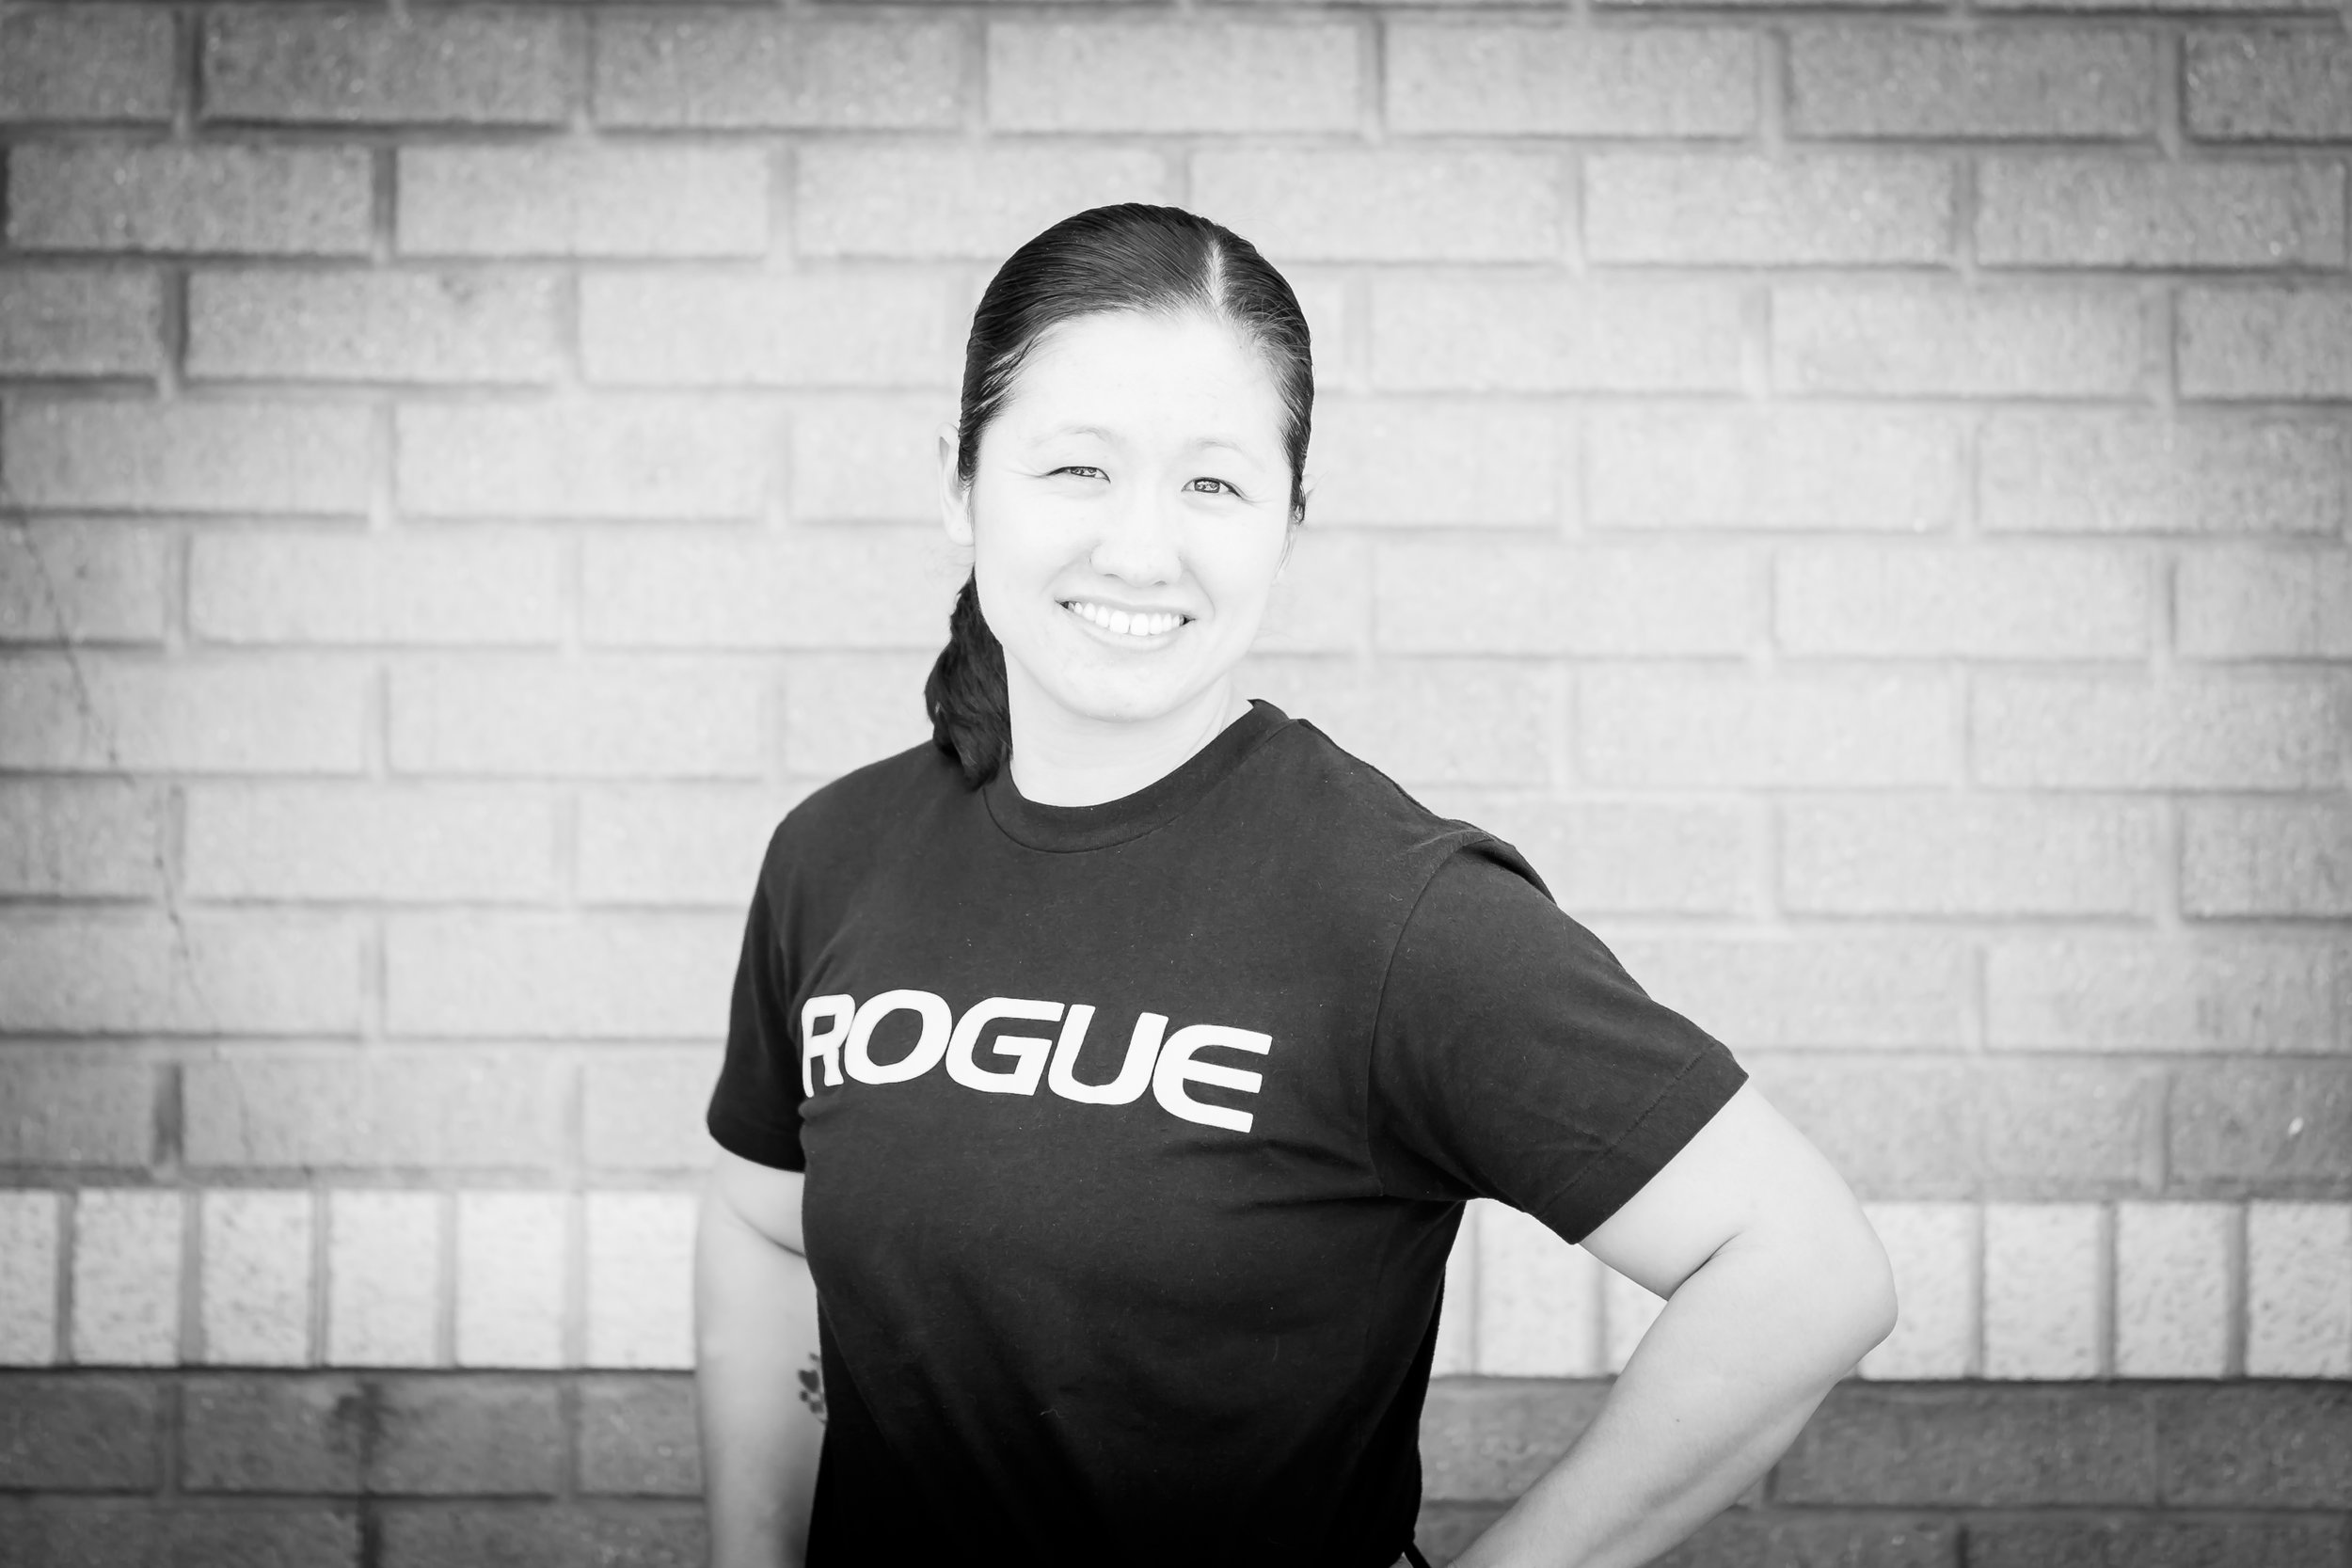 Stephanie - COACH, CF-L1, CrossFit Weightlifting, CrossFit KidsI have been loving CrossFit since the day I started back in June 2013. Walking through those doors for the first time took a ton of courage, but it was one of the best choices I've ever made, hands down. The combination of constantly varied functional movements performed at high intensity was all it took to get me hooked. I love the physical and mental challenge that's inherent in each and every workout. I have benefitted immensely from the personal growth CrossFit has afforded me in every aspect of my life, not just in the gym. I truly love all things CrossFit, and burpees are my favorite movement (not kidding).I earned my CF-L1 in 2015 and then followed that up in 2016 with the CrossFit Weightlifting and the CrossFit Kids certifications. I love coaching CrossFit and I'm excited and honored to be part of the team at Controlled Chaos.When I'm not in the gym, I work in IT and enjoy reading, learning, listening to podcasts and music, hiking, hanging with my dogs (miniature schnauzers are the best!), spending time with family and friends, being a die-hard Denver Broncos fan, and doing everything possible to be the best I can be in life.Connect with Stephanie at stephyagriffin@gmail.com